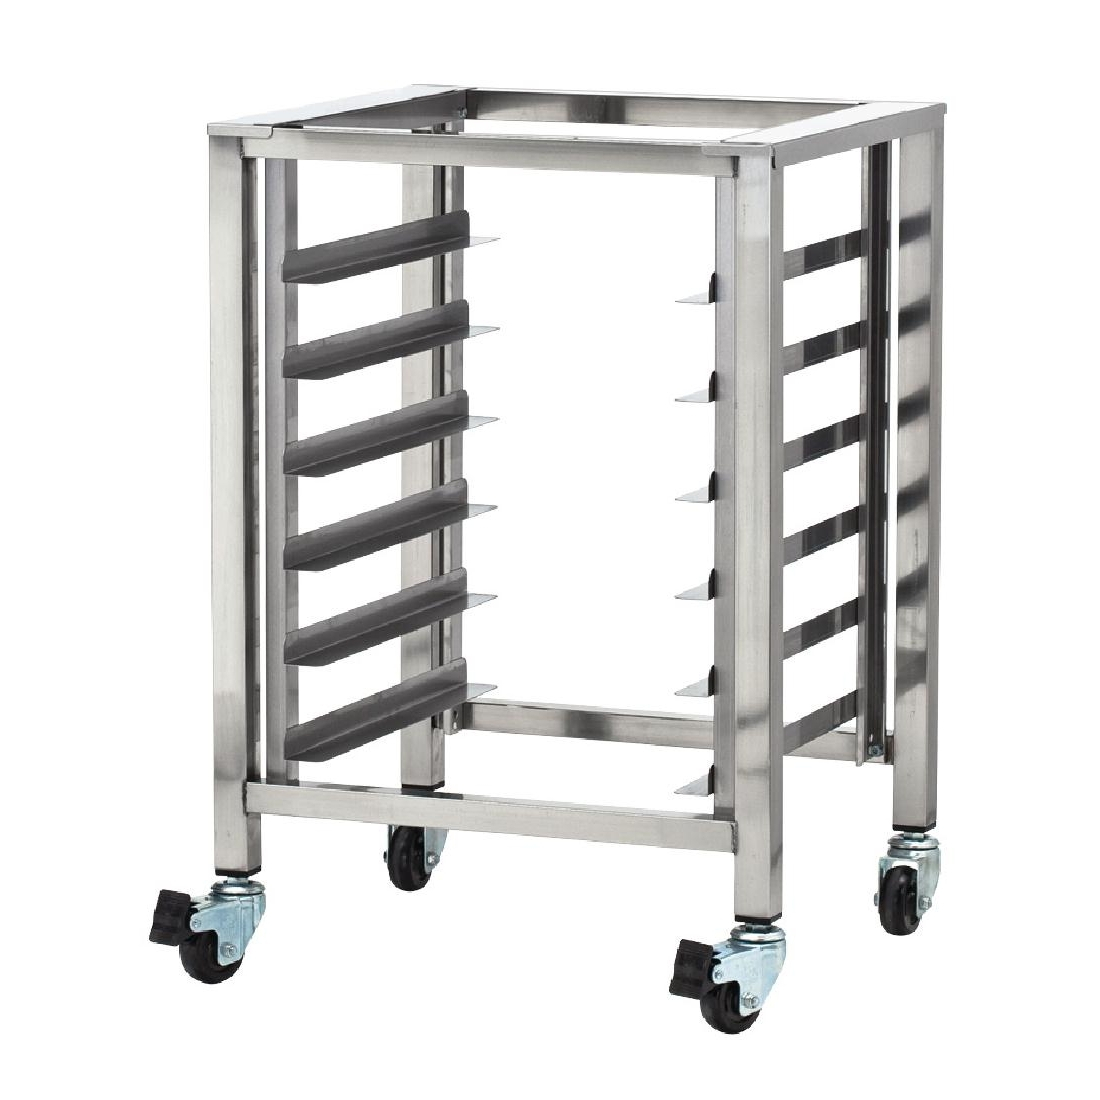 TurboFan Stainless Steel Stand with Castors for DL443 DL445 SK23